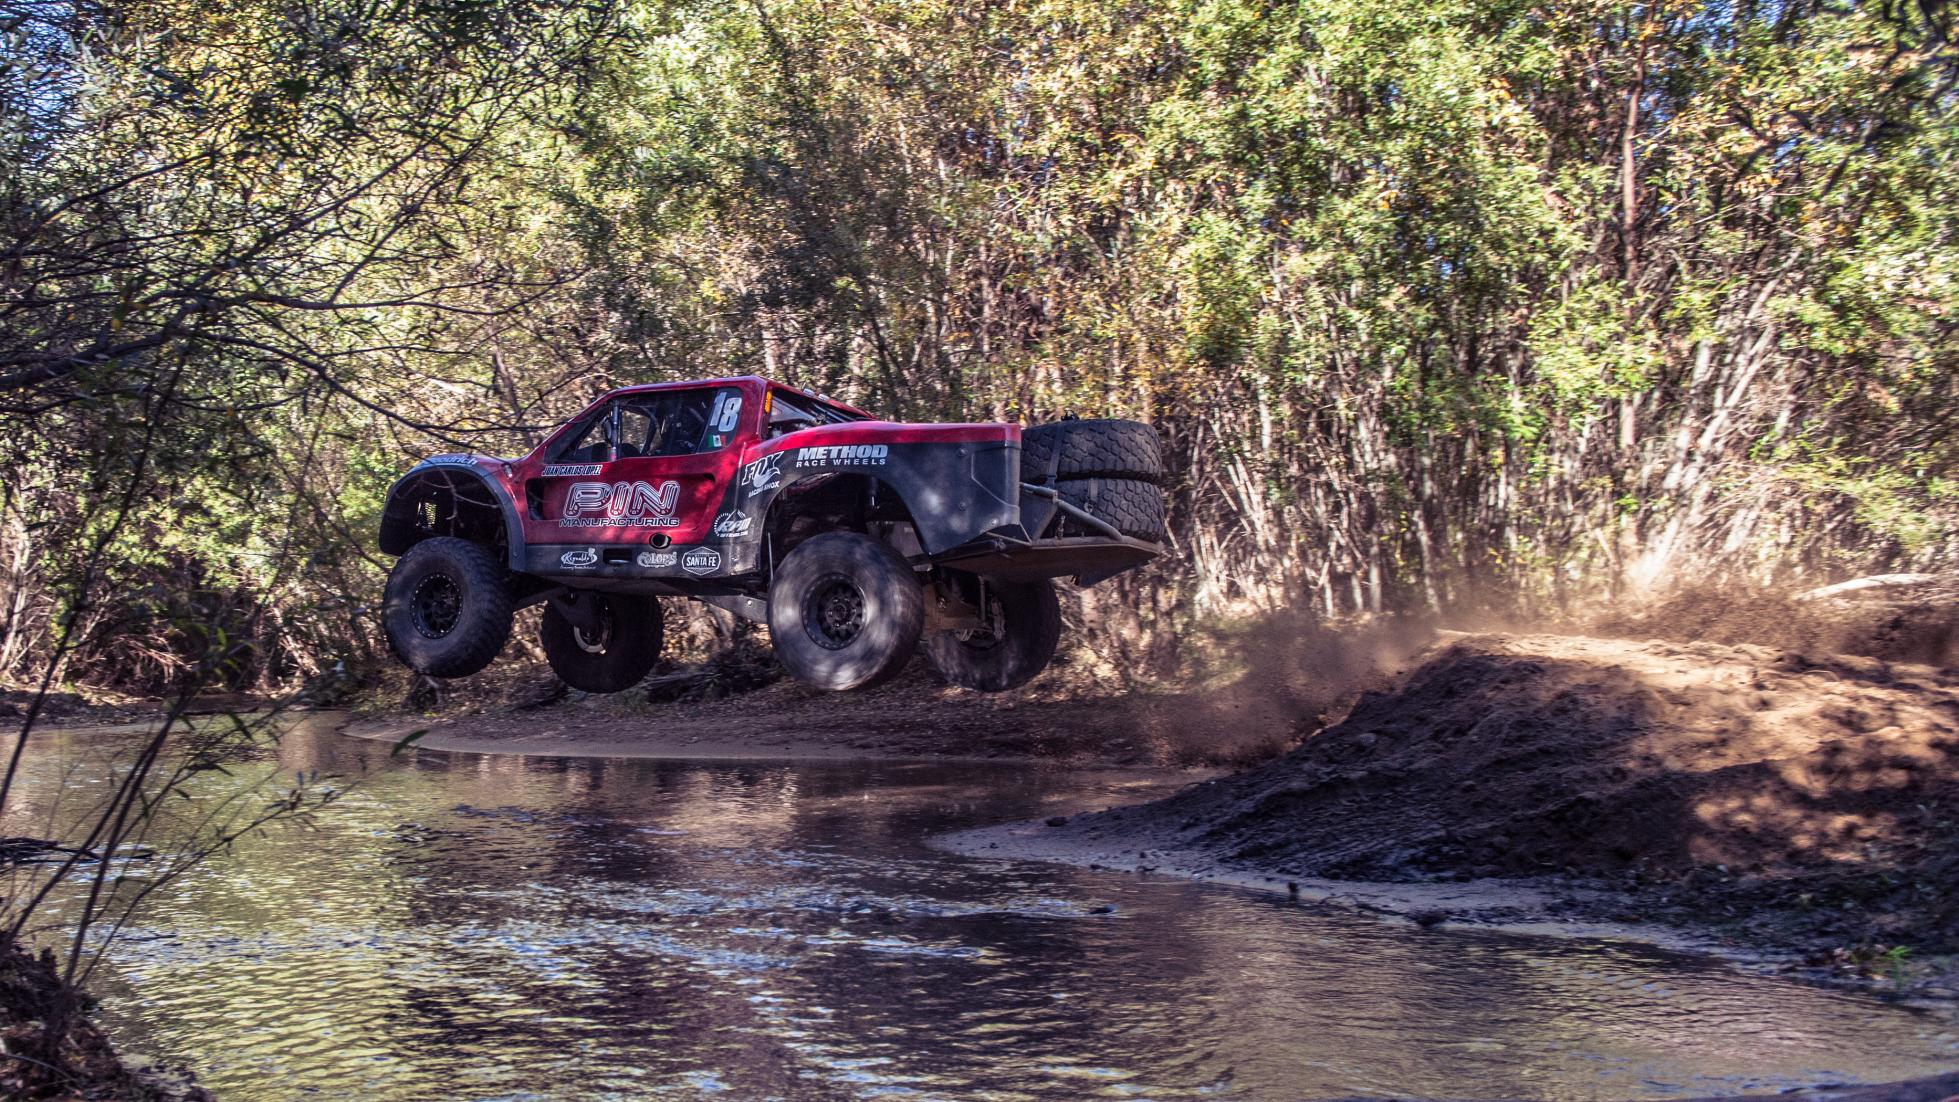 Trophy Truck across the finish line Photo: topgear